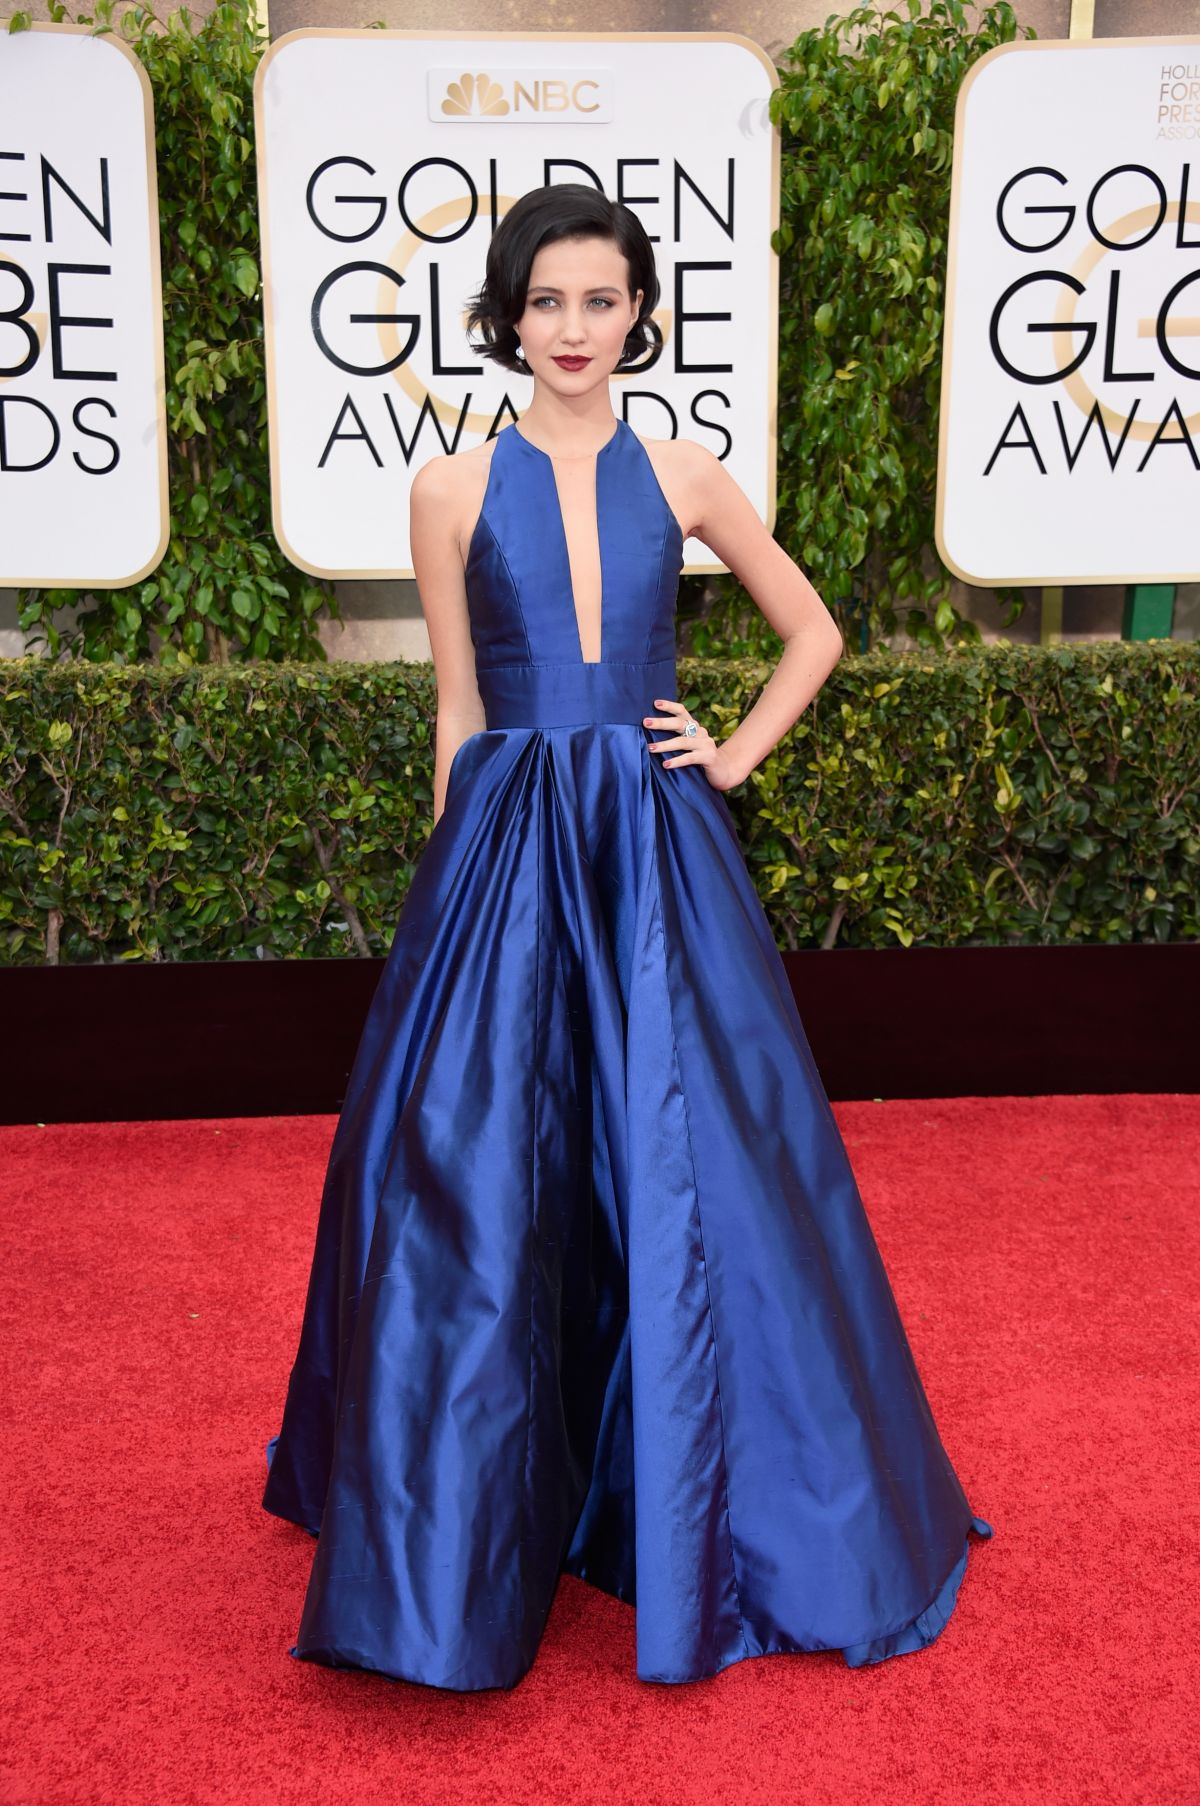 JULIA GOLDANI TELLES at 2015 Golden Globe Awards in Beverly Hills